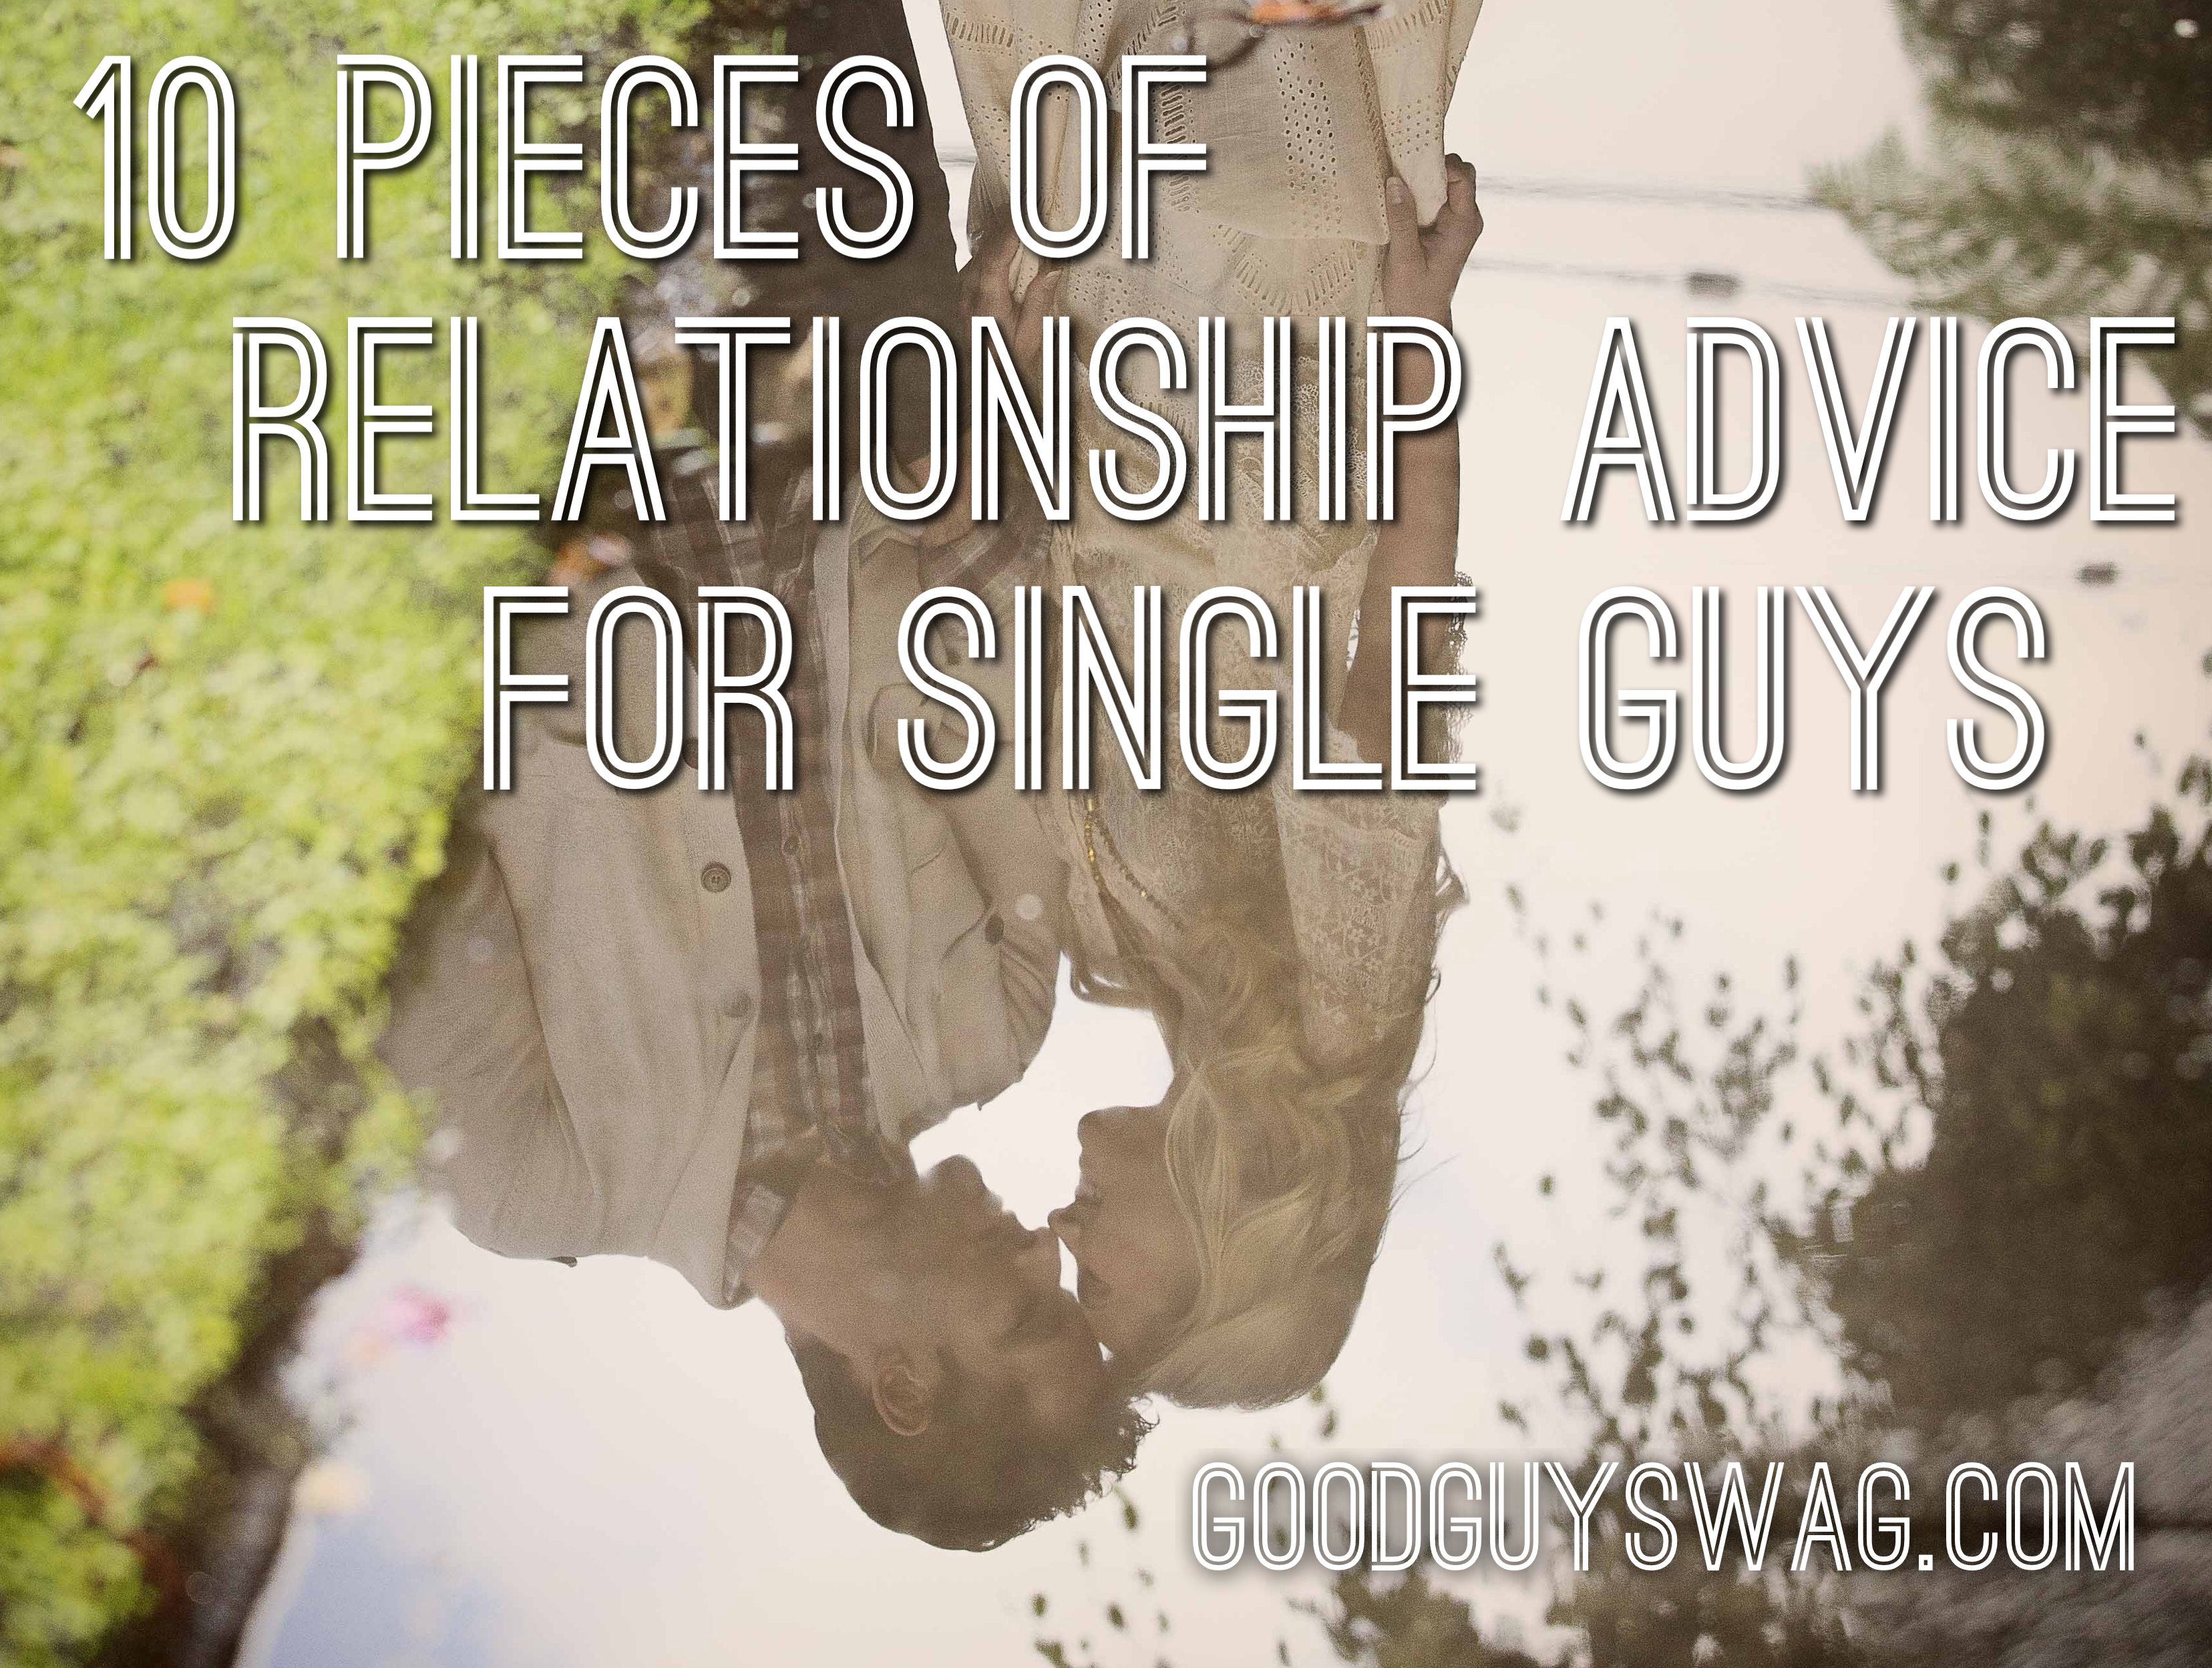 10 Pieces of Relationship Advice for Single Guys